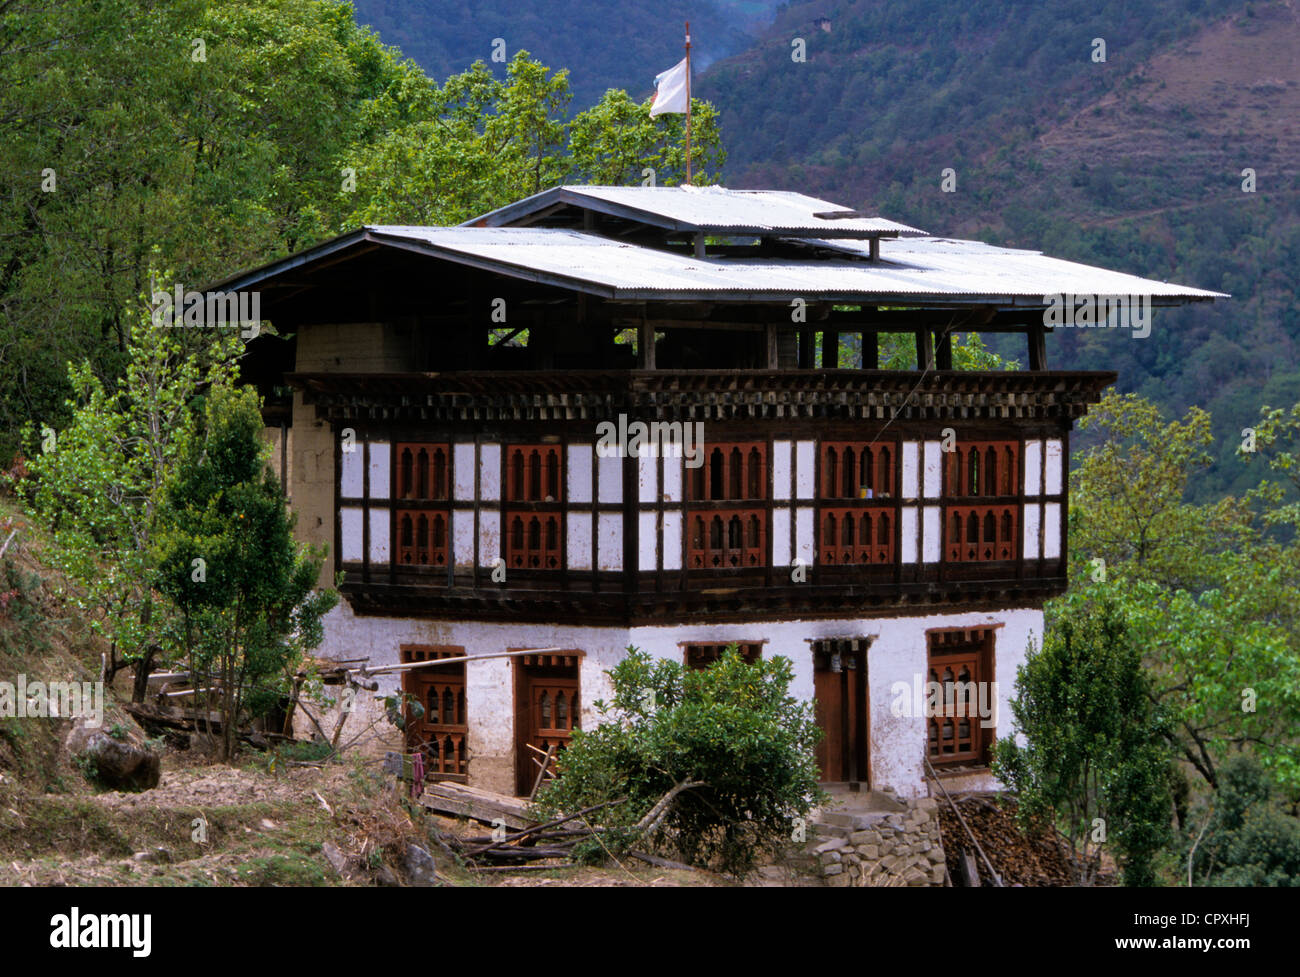 bhutan traditional wooden rammed earth house with a roof covered stock photo royalty free. Black Bedroom Furniture Sets. Home Design Ideas